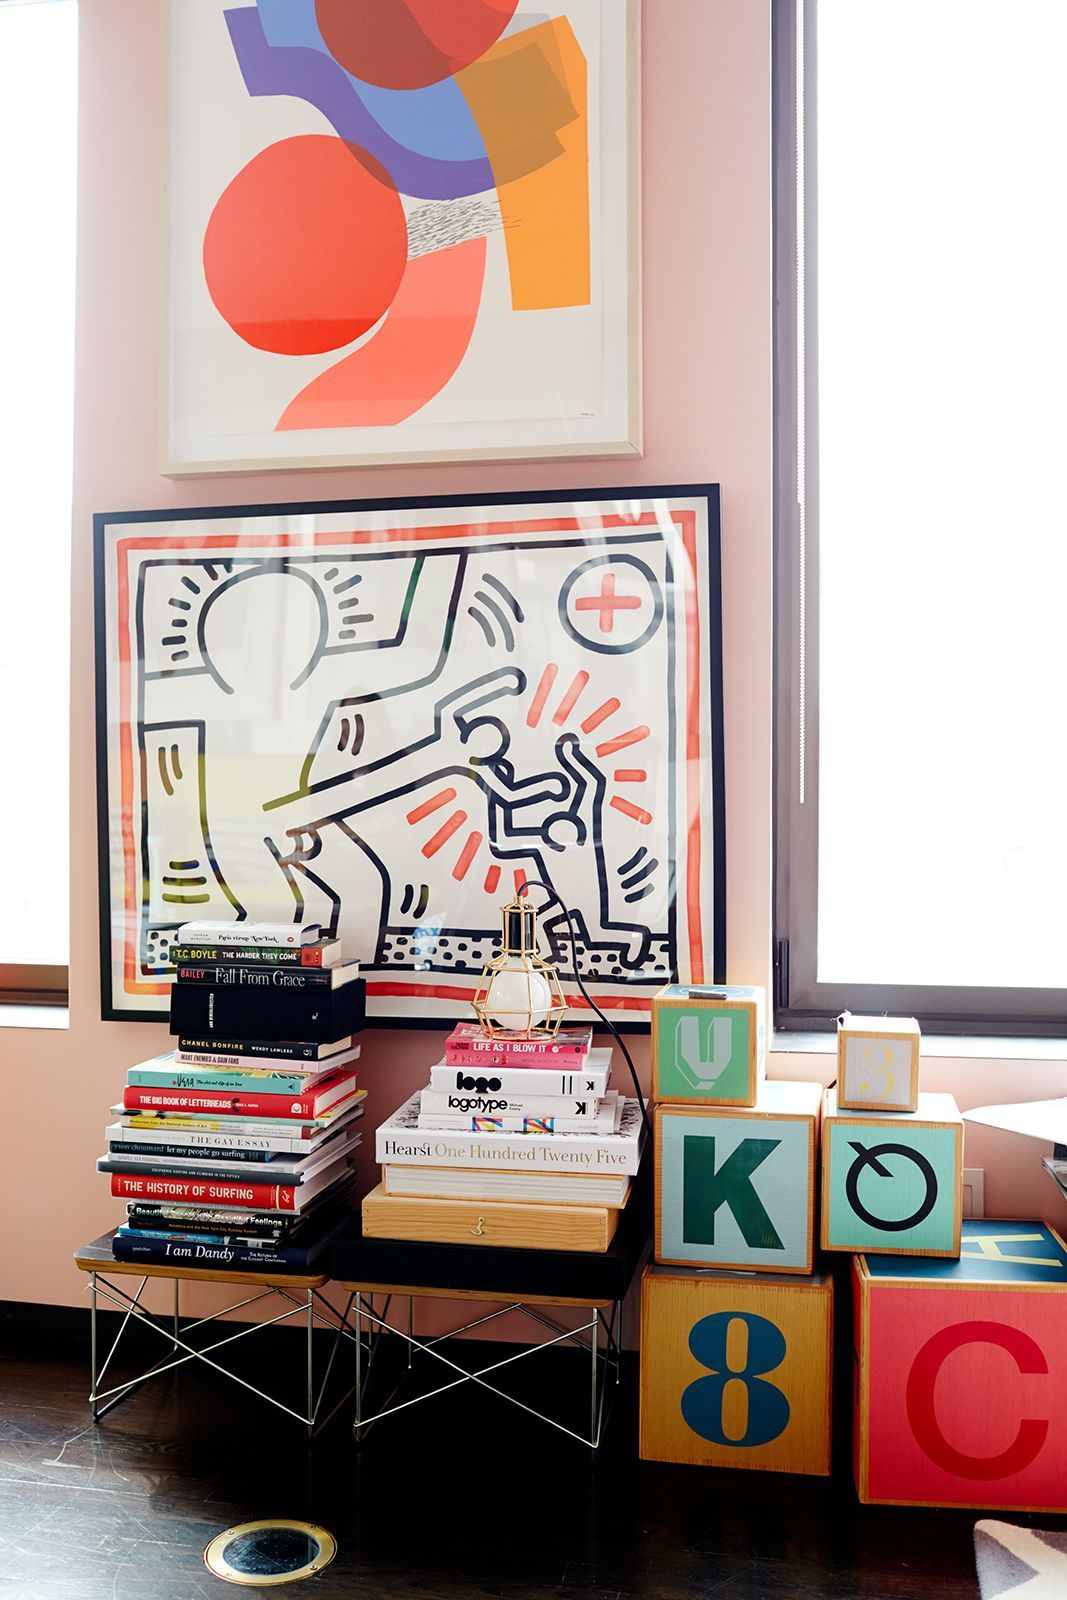 Meet The CEO Who Mixes Bold Colors Like A Boss #refinery29  http://www.refinery29.com/bradford-shellhammer-home-tour#slide-8  Artworks hung closely together and low to the ground may seem taboo, but totally work in Shellhammer's no-holds-barred apartment. A modern piece by Hense sits atop a prized Keith Haring. Large child blocks complete the great mix of high and low.